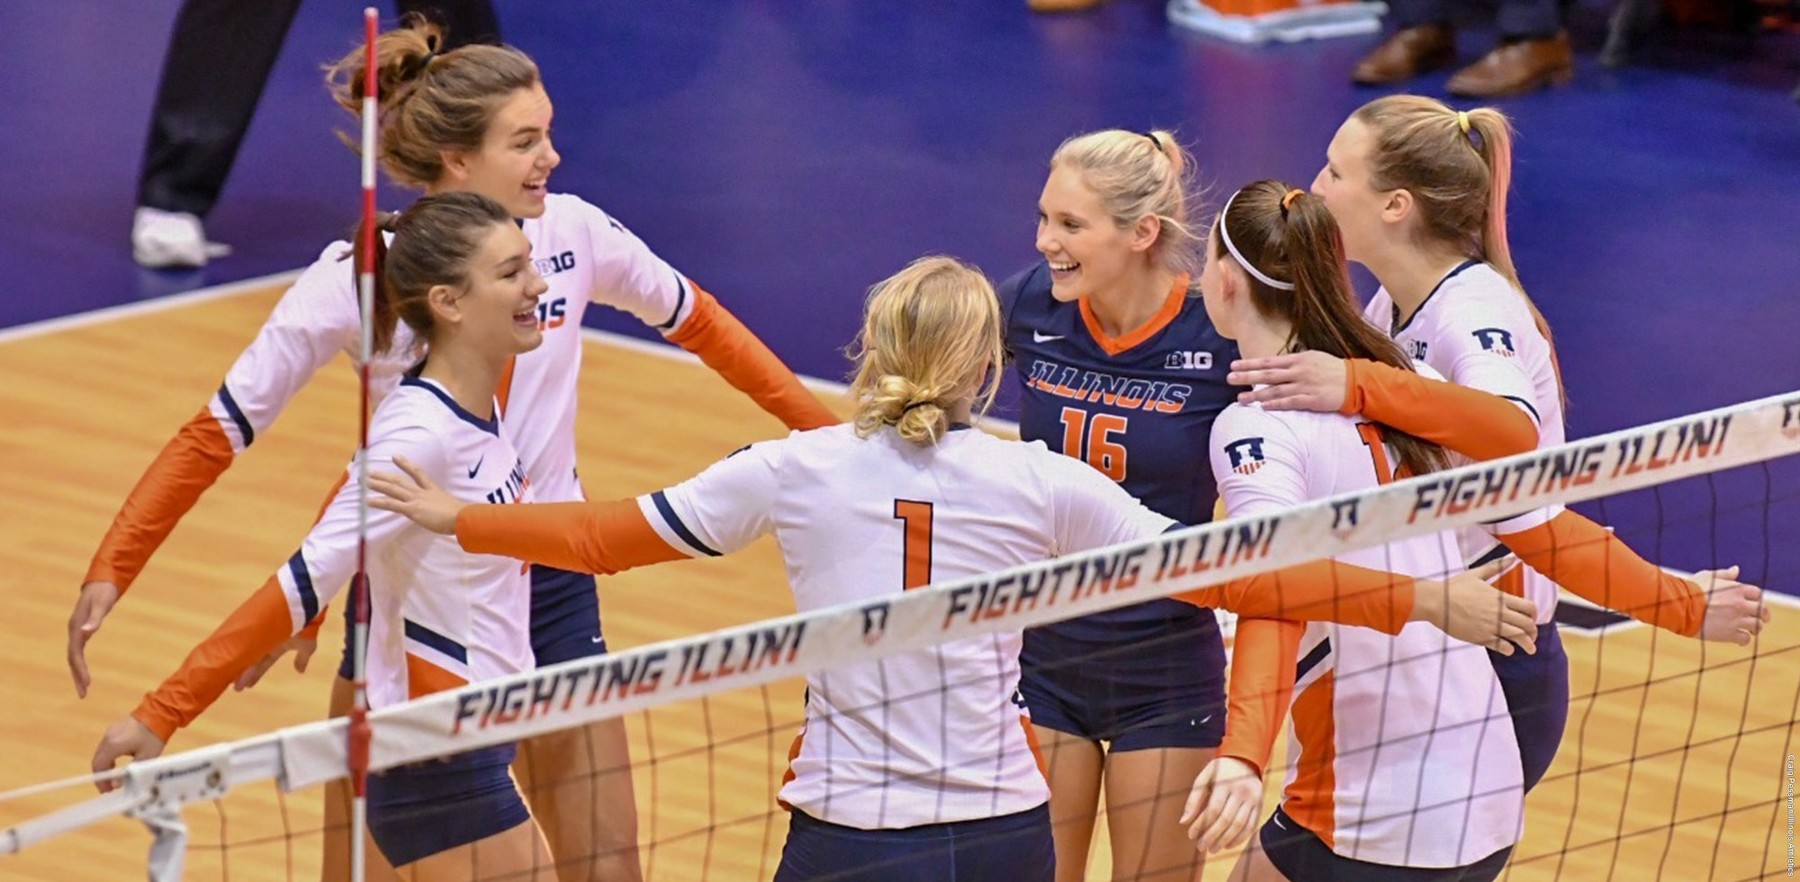 volleyball players' group hug on the court at Huff Hall Wednesday night